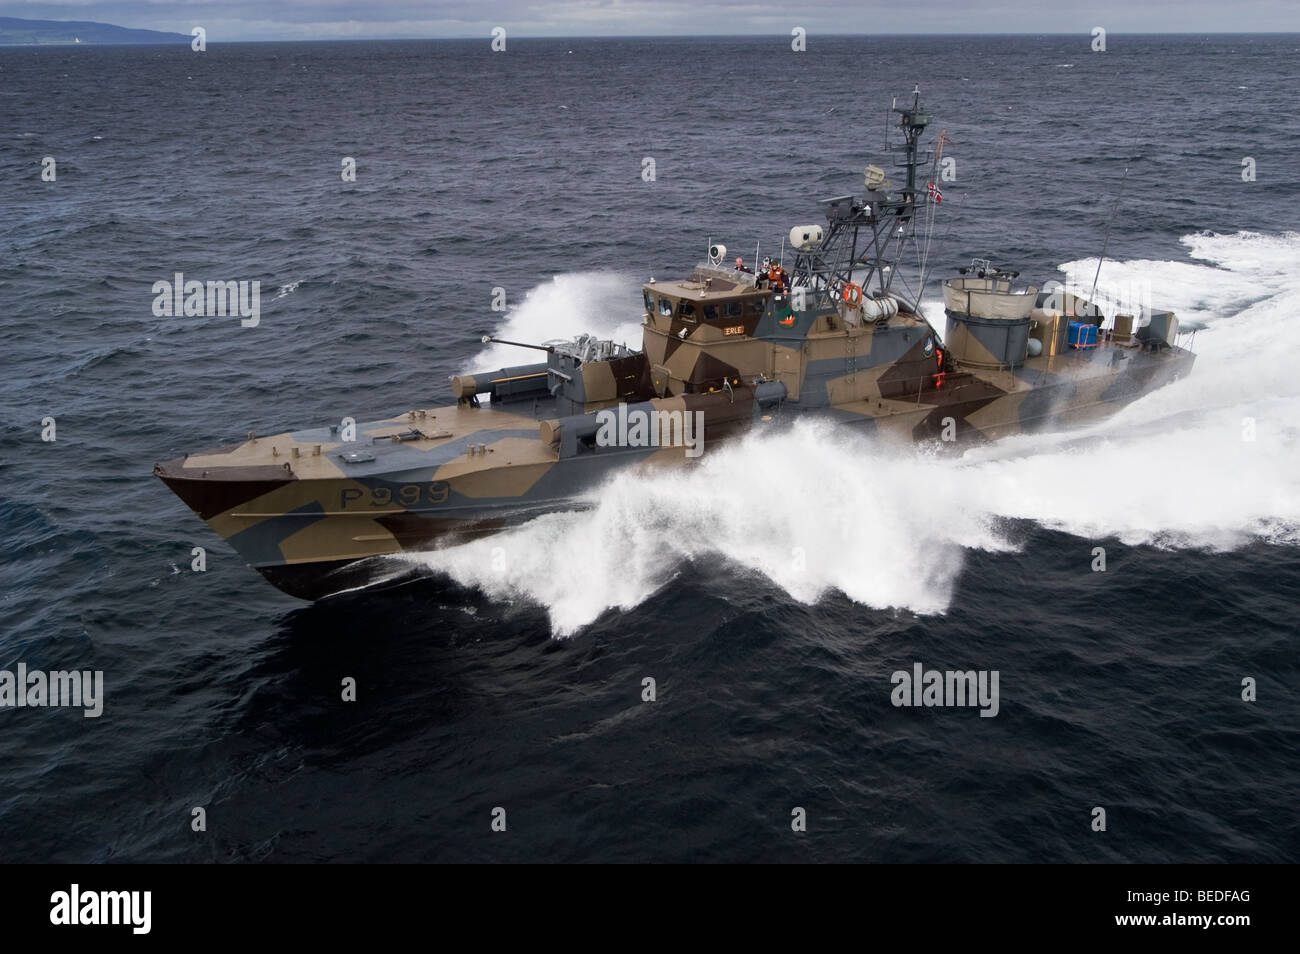 Knm Erle A Hauk Class Missile Torpedo Boat Of The